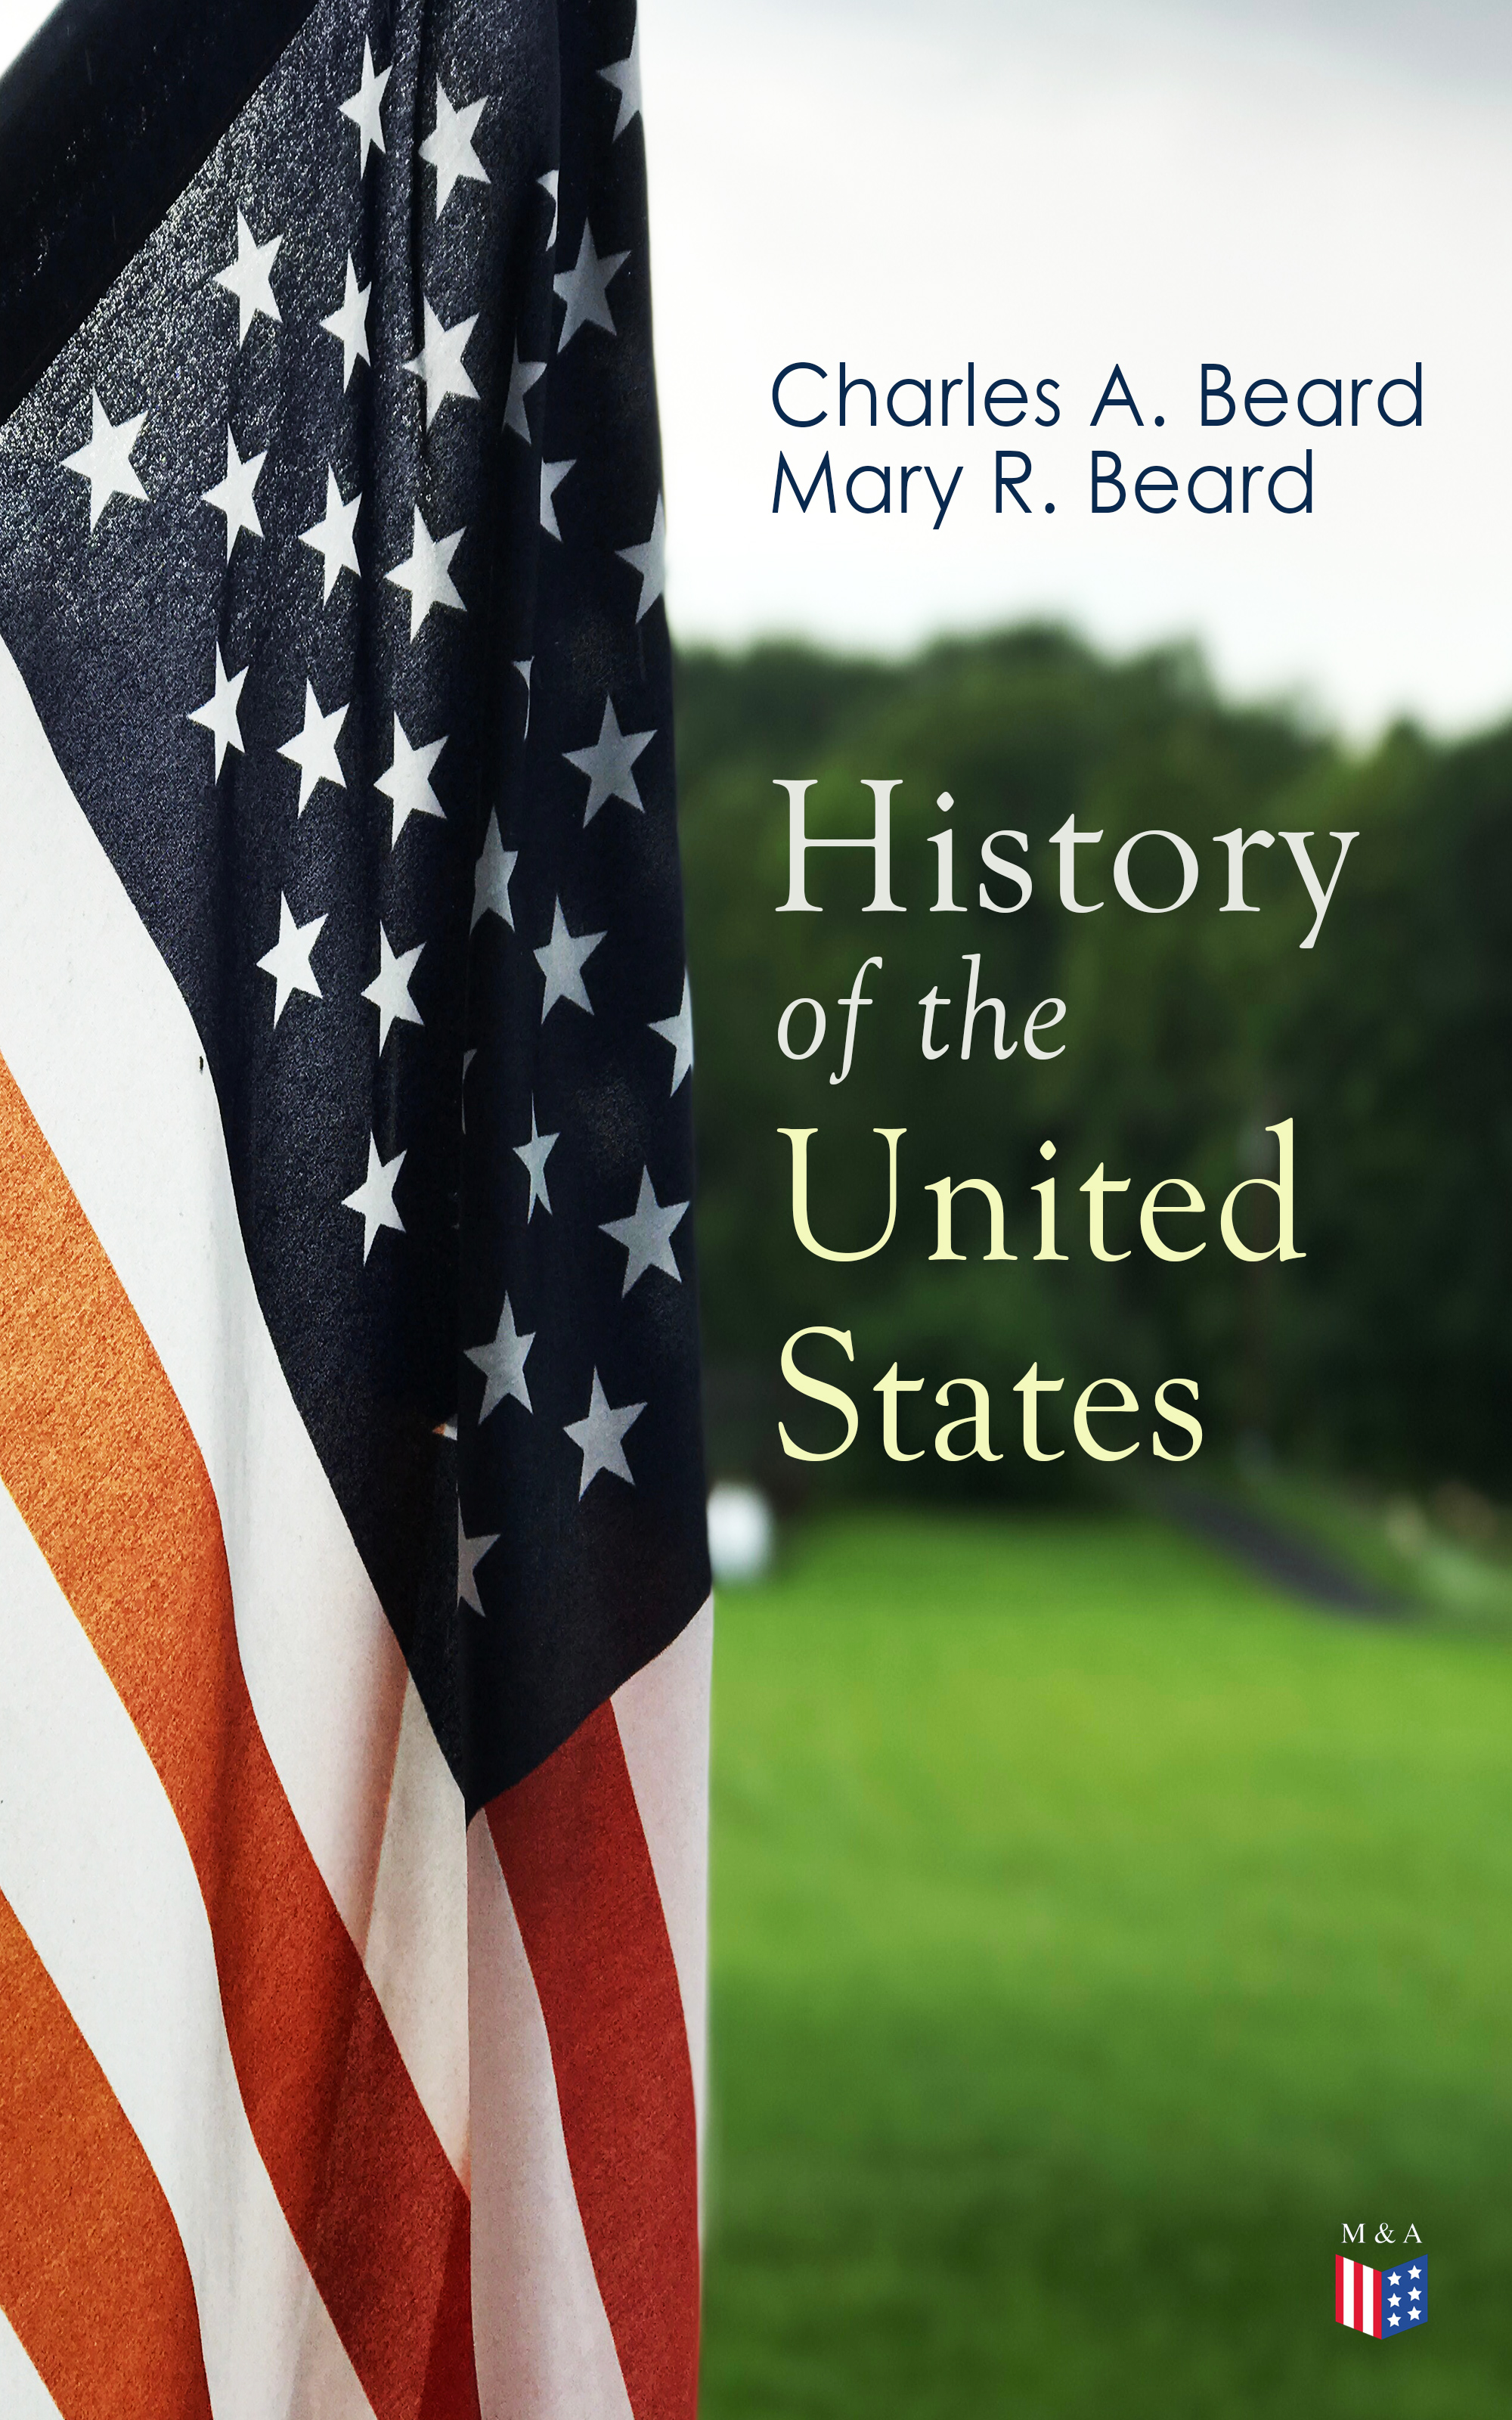 Charles A. Beard History of the United States knox john jay a history of banking in the united states